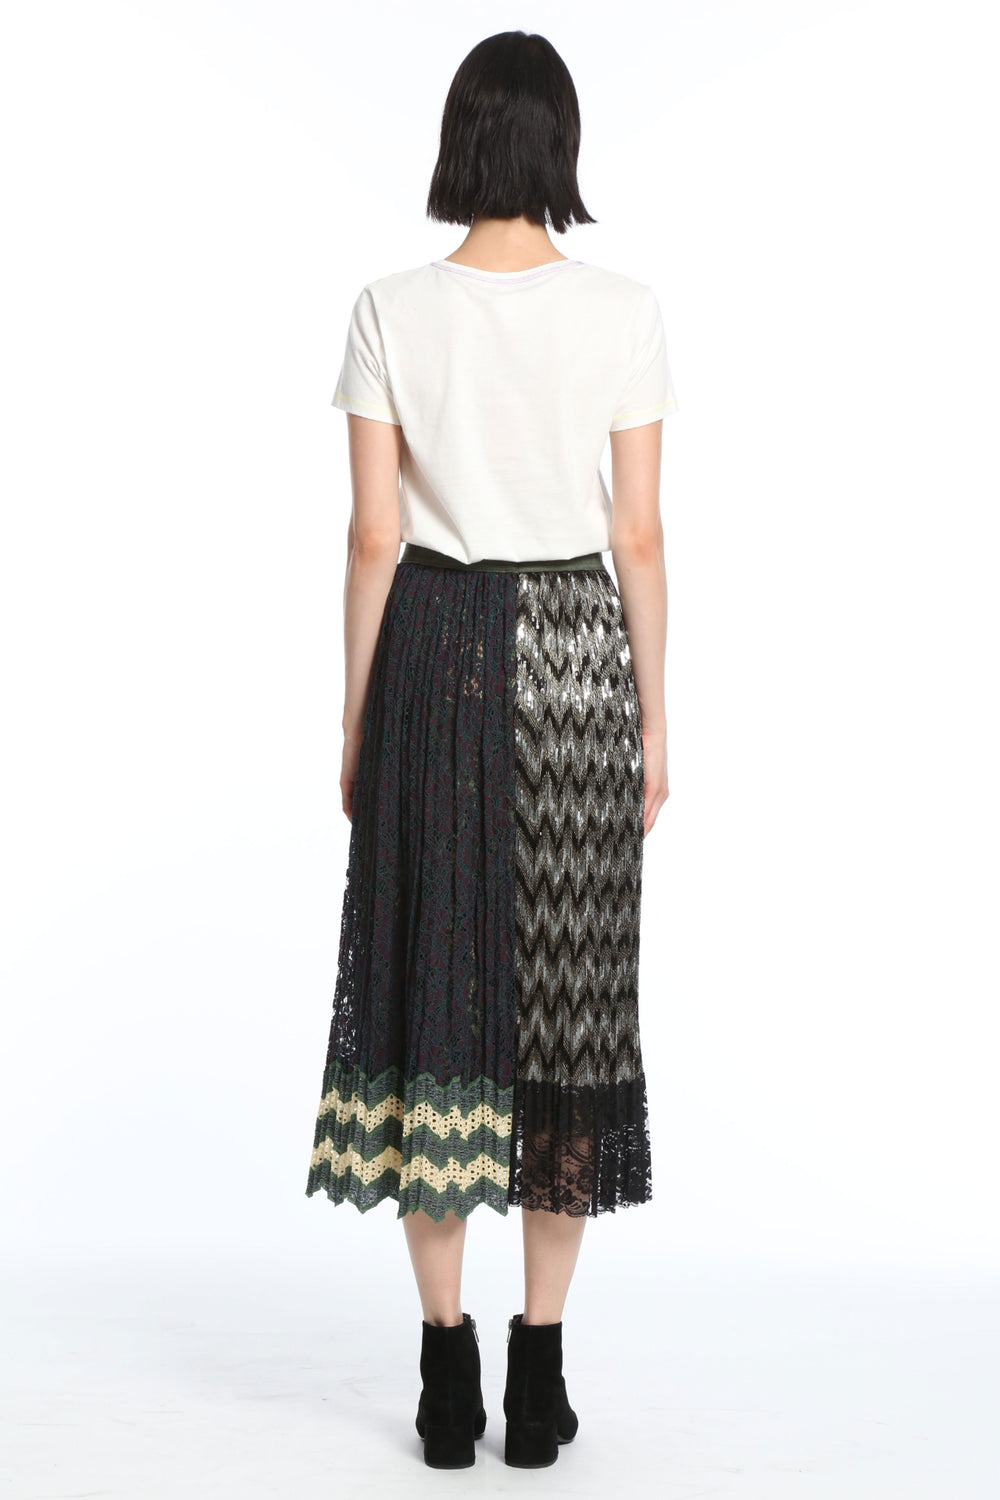 10753a7442 ... Womens Green Multi Pleated Lace Asymmetrical Skirt 2 ...